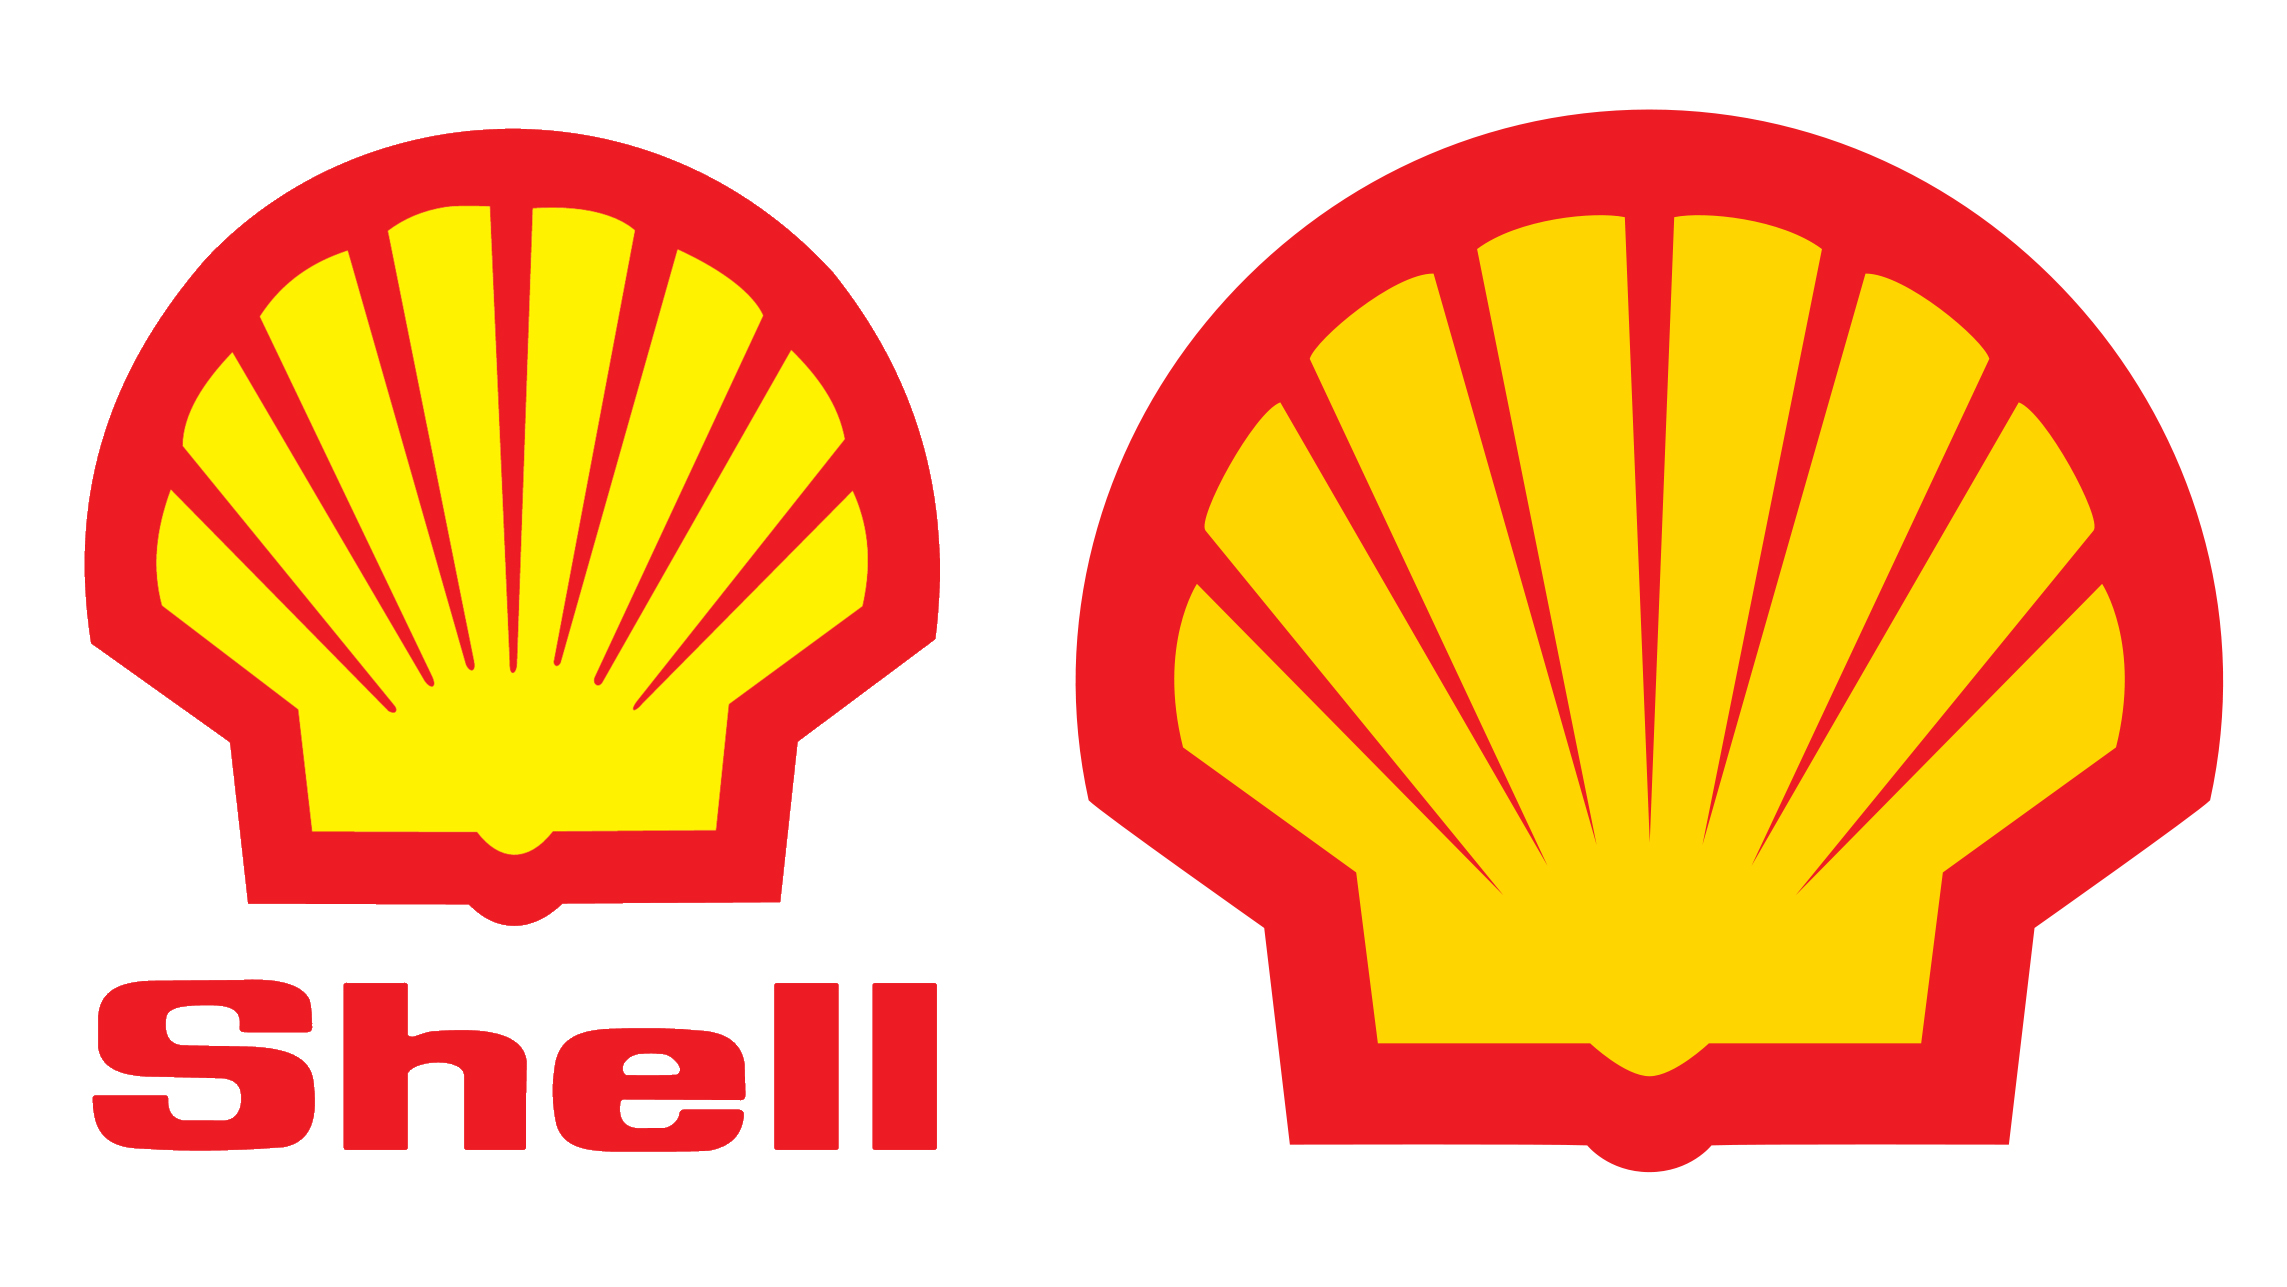 Shell logo before and after